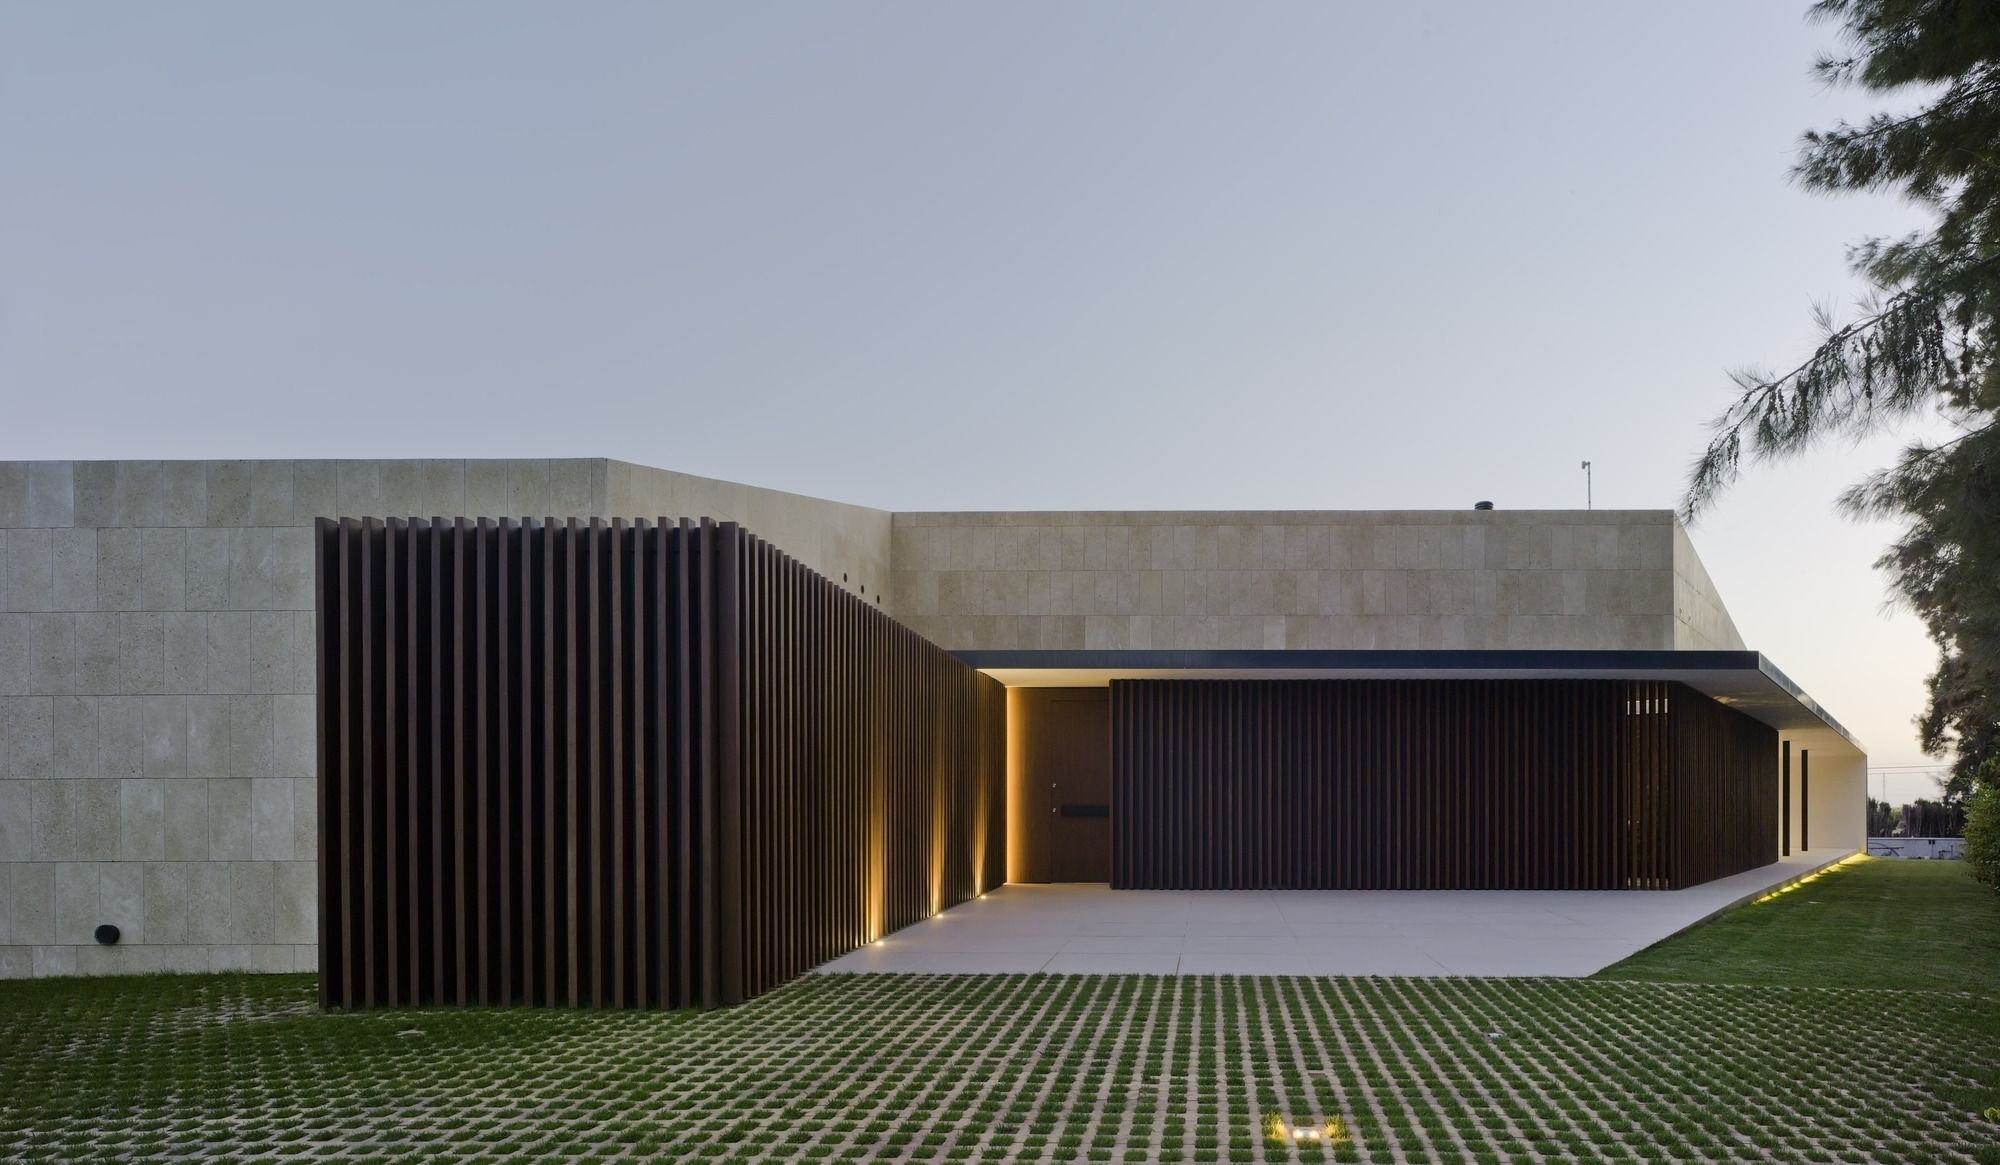 Image of from gallery single family house in valverde estudio arn arquitectos photograph by david frutos also rh pinterest